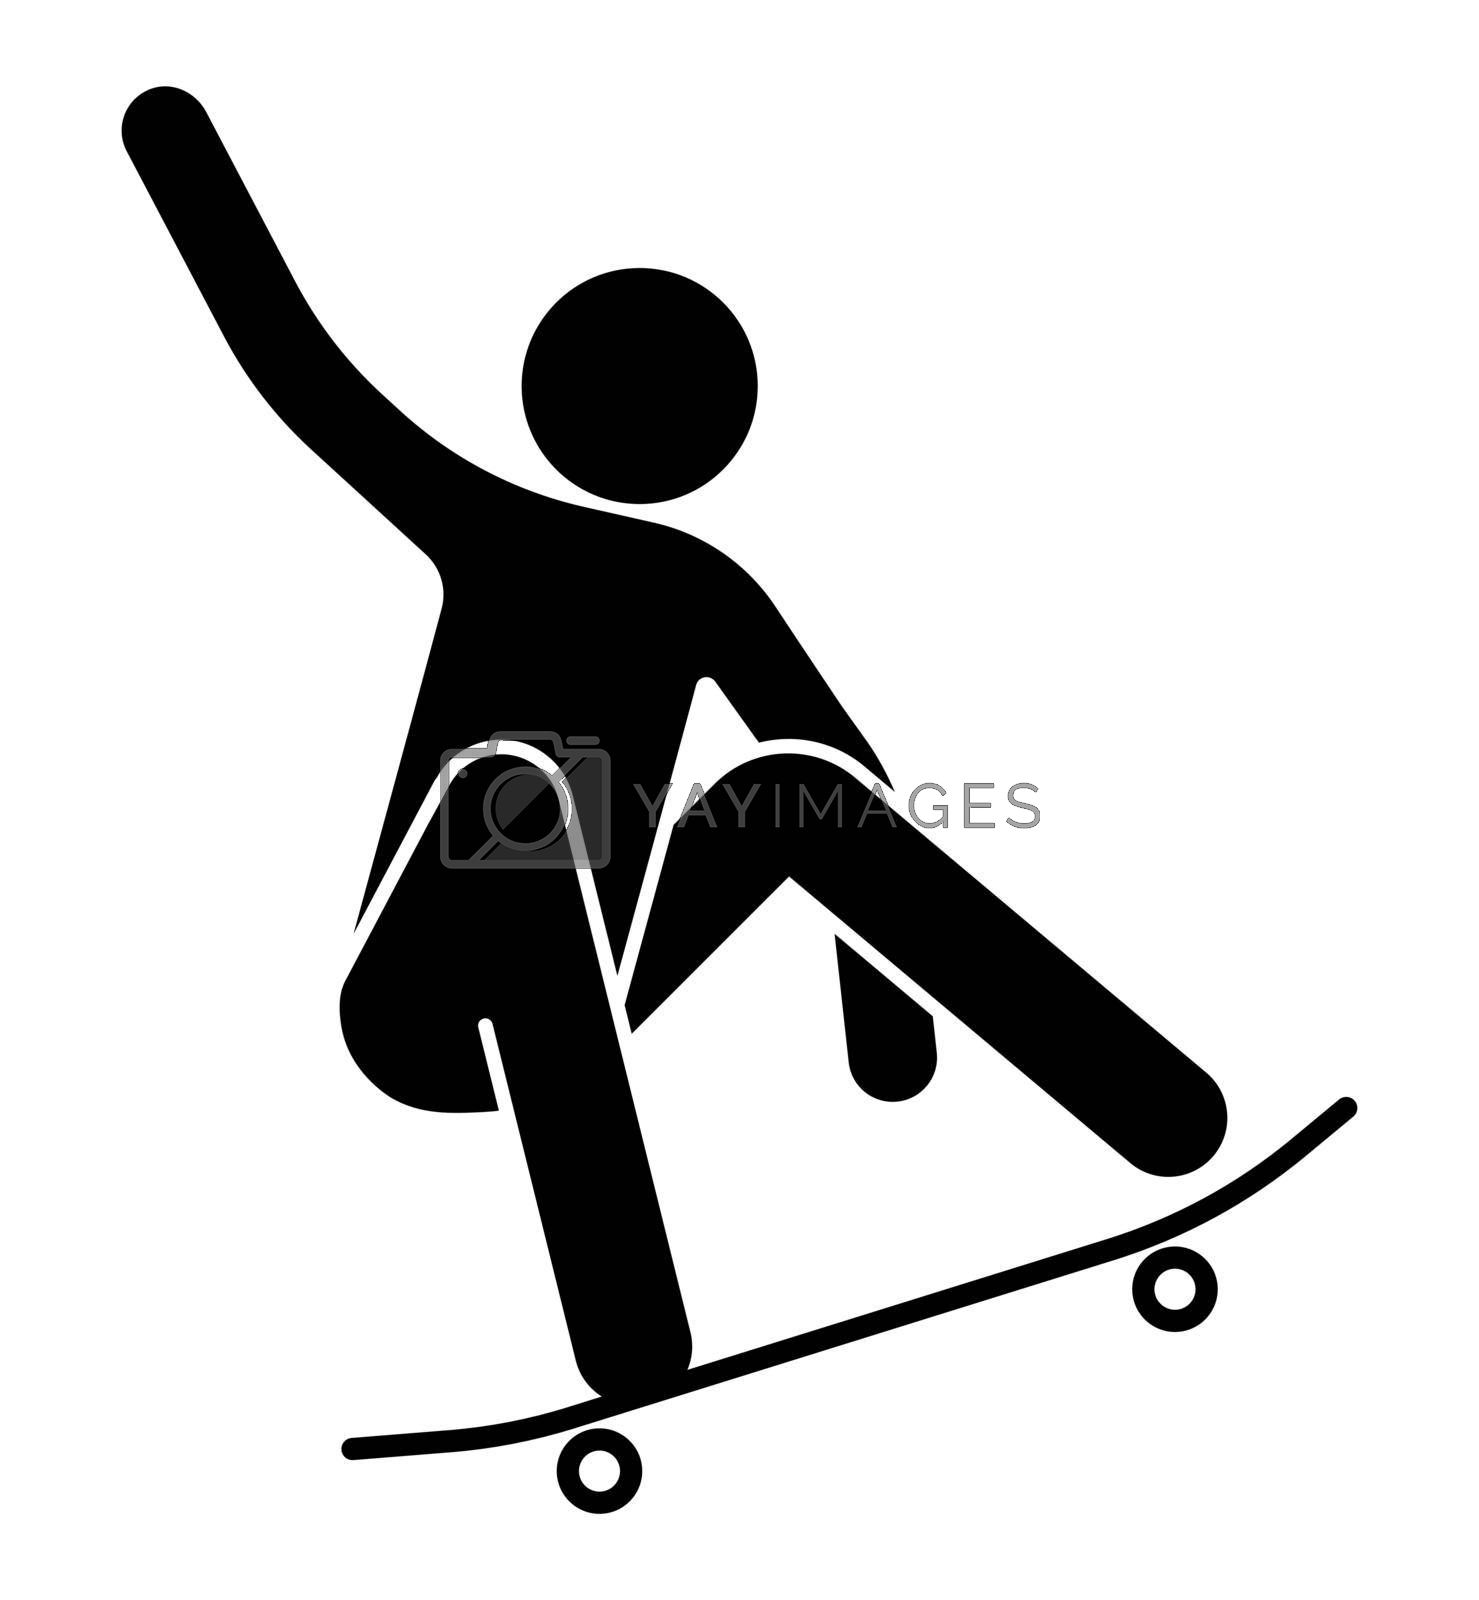 man on a skateboard performs a trick, extreme sport, riding a board. Isolated vector on white background